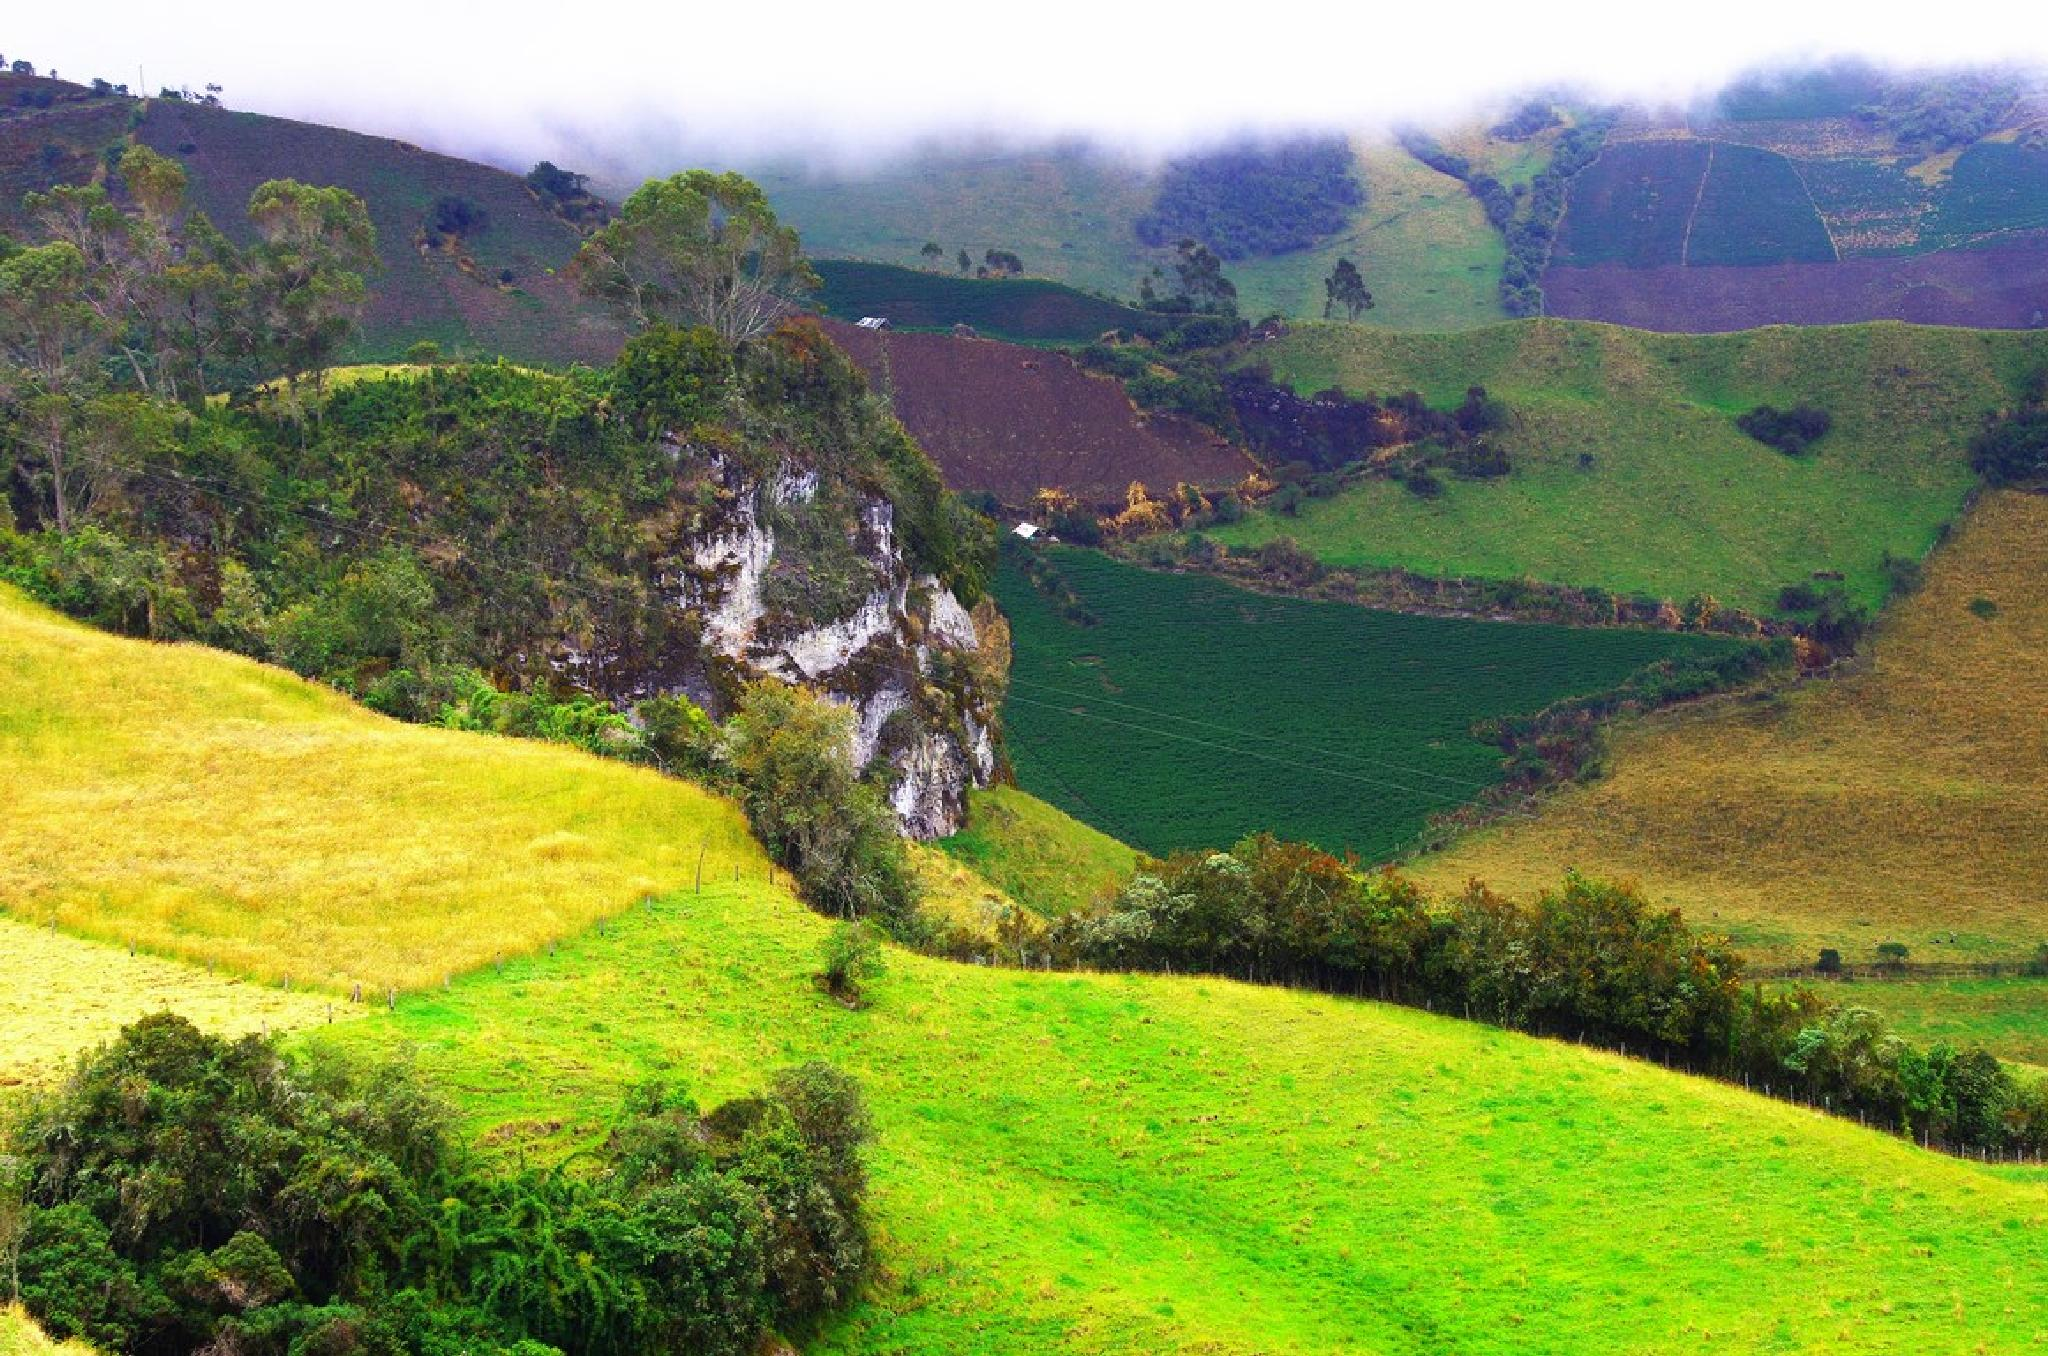 Farms in the high colombian Andes by Dan Steeves